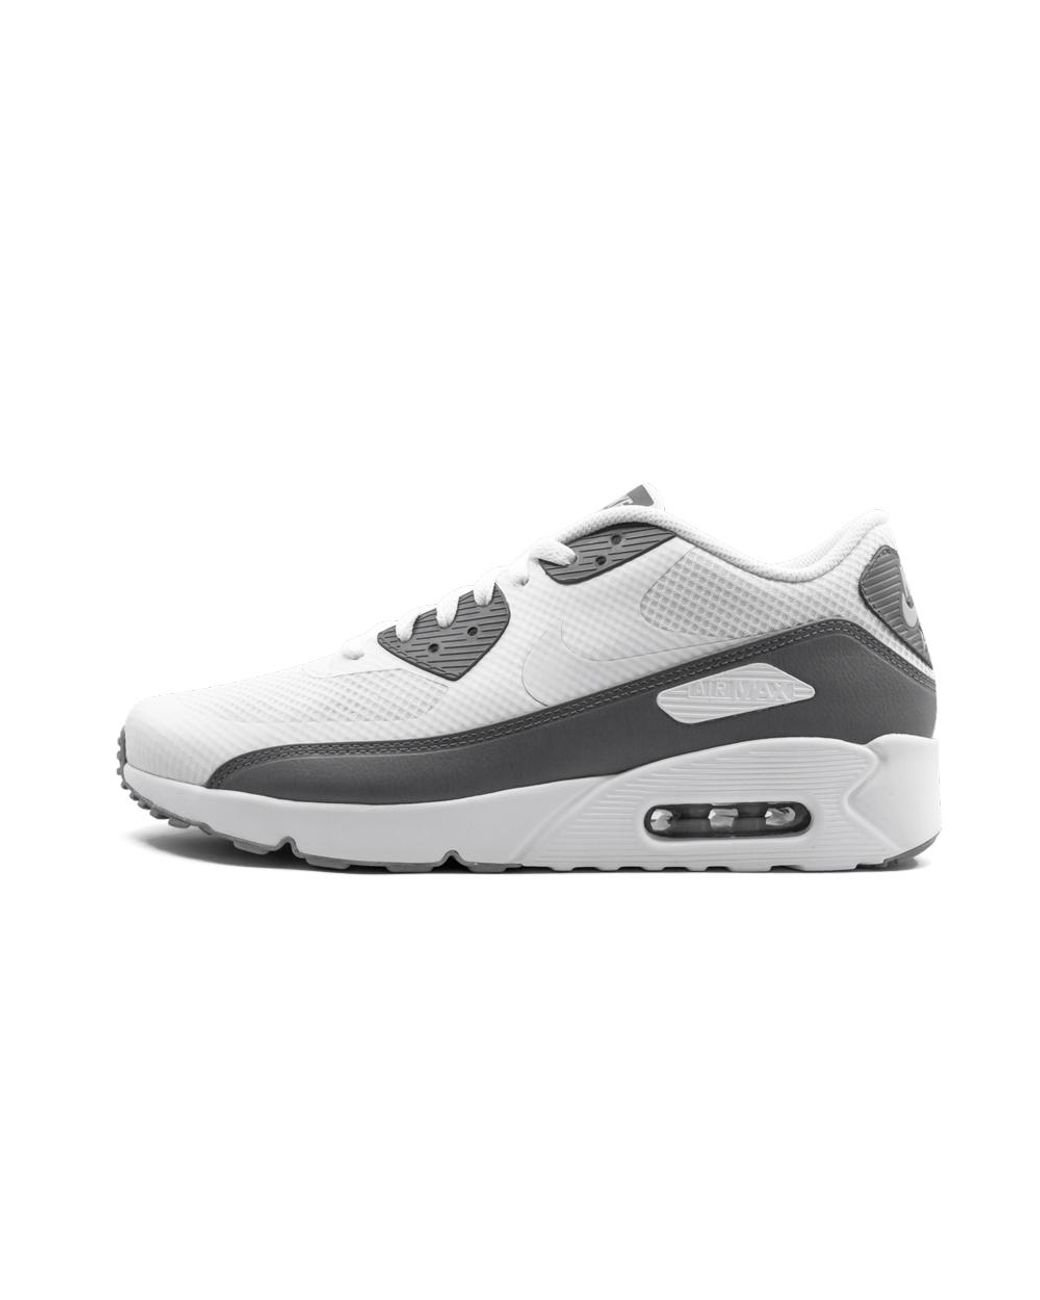 Air Max 90 Ultra 2.0 Essential Shoes Size 12